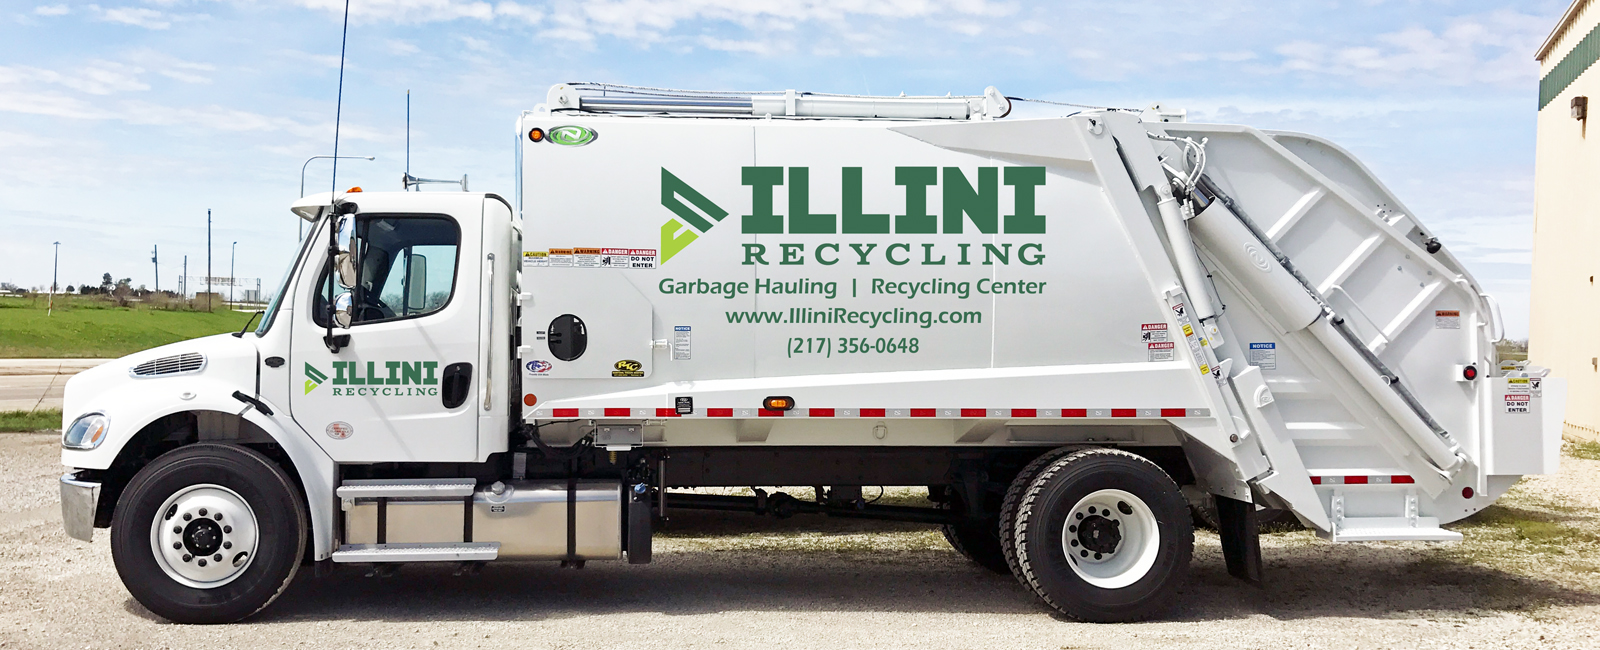 Illini Recycling